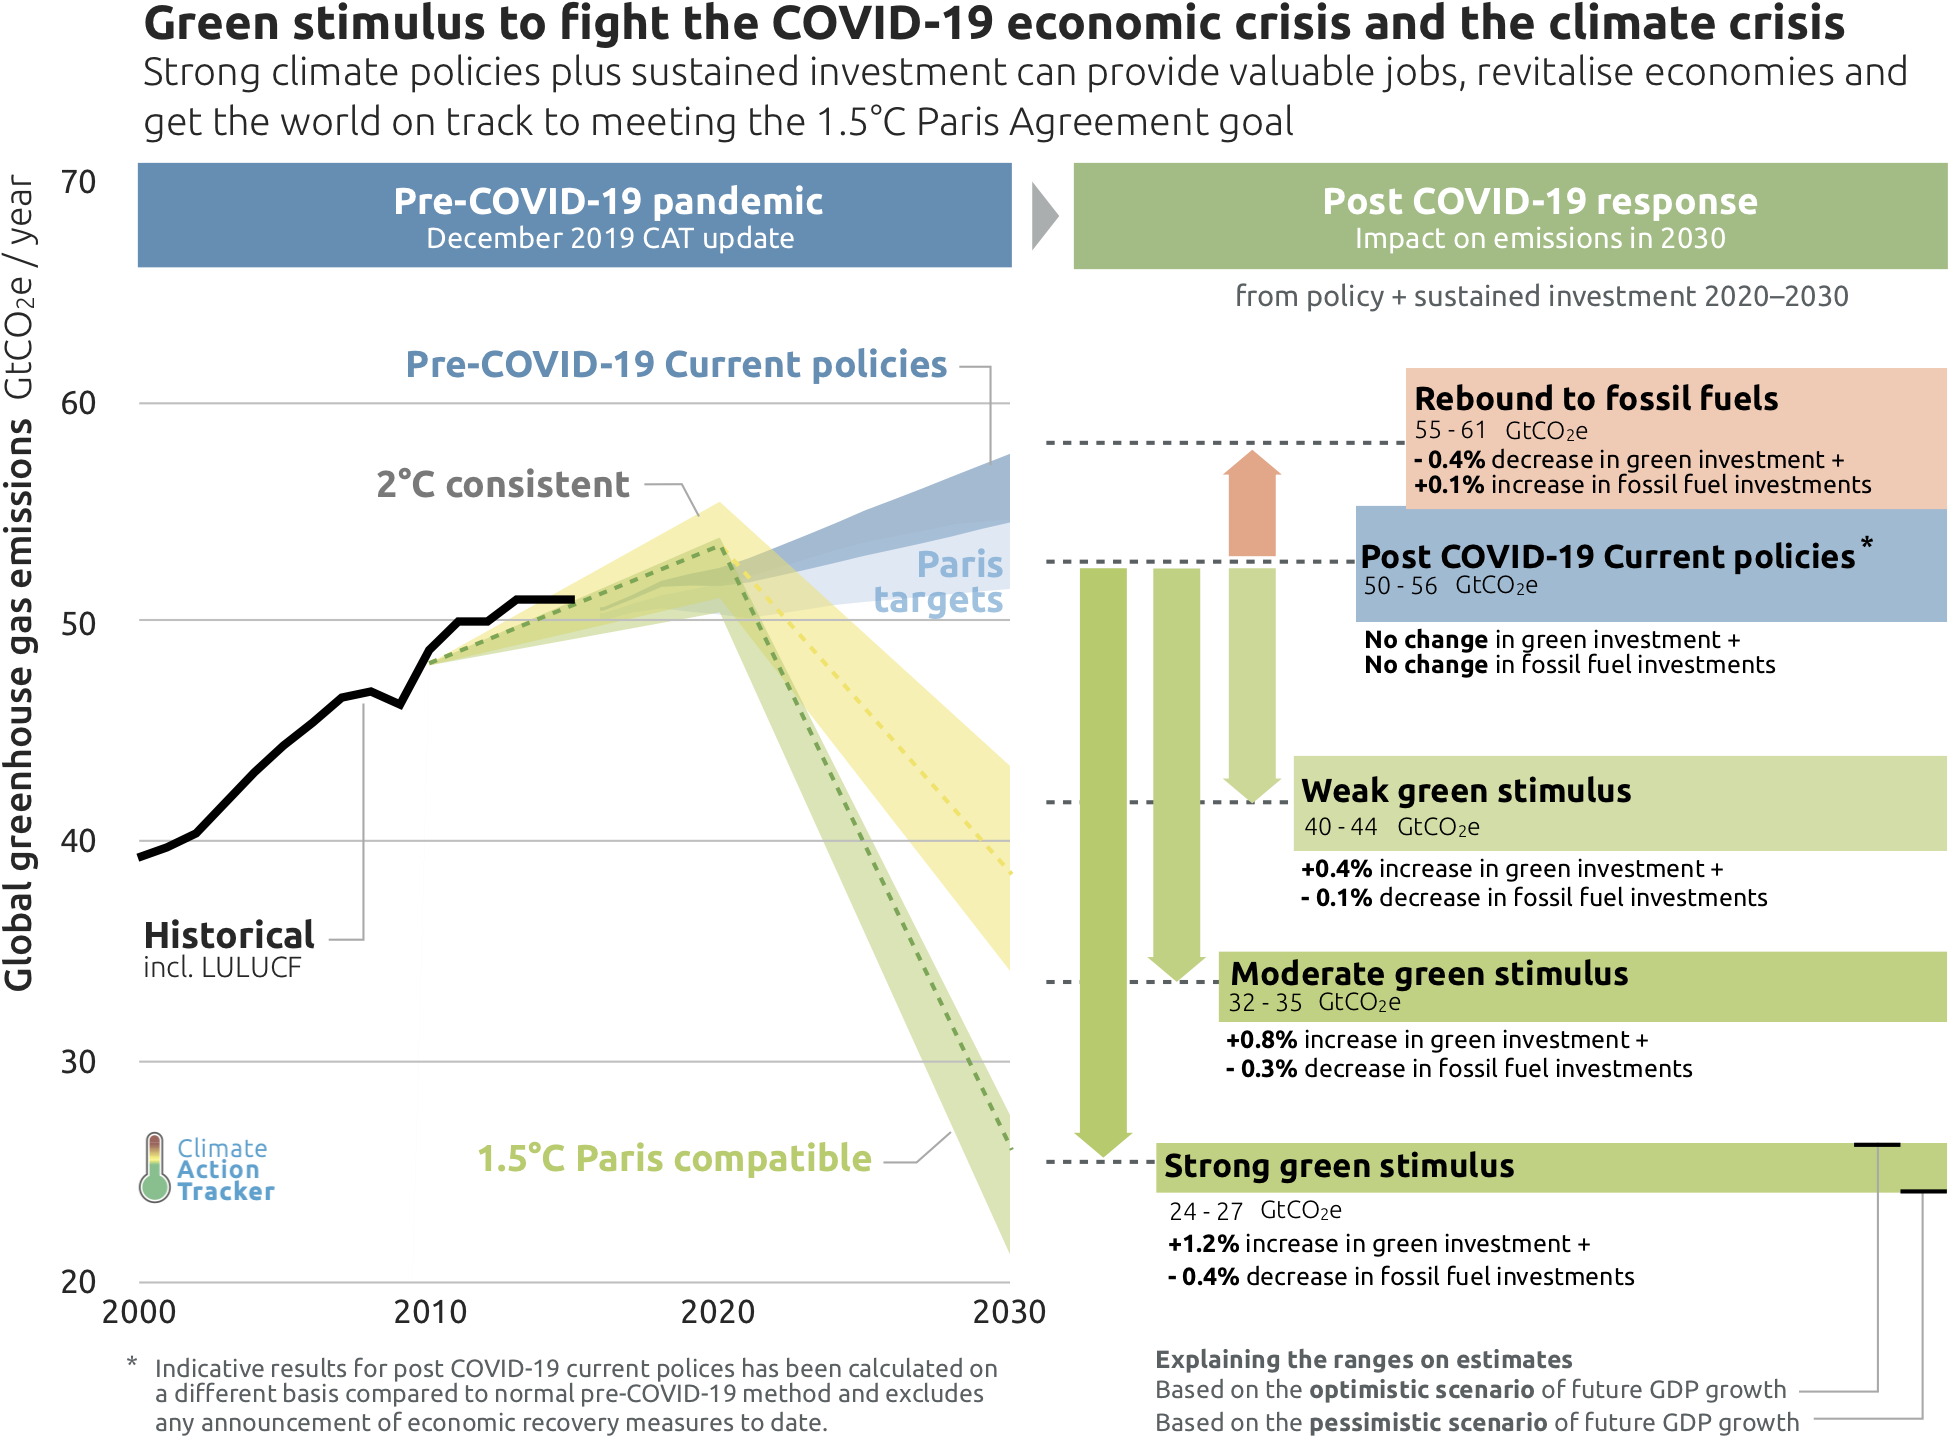 Source: Climate Action Tracker, April 2020